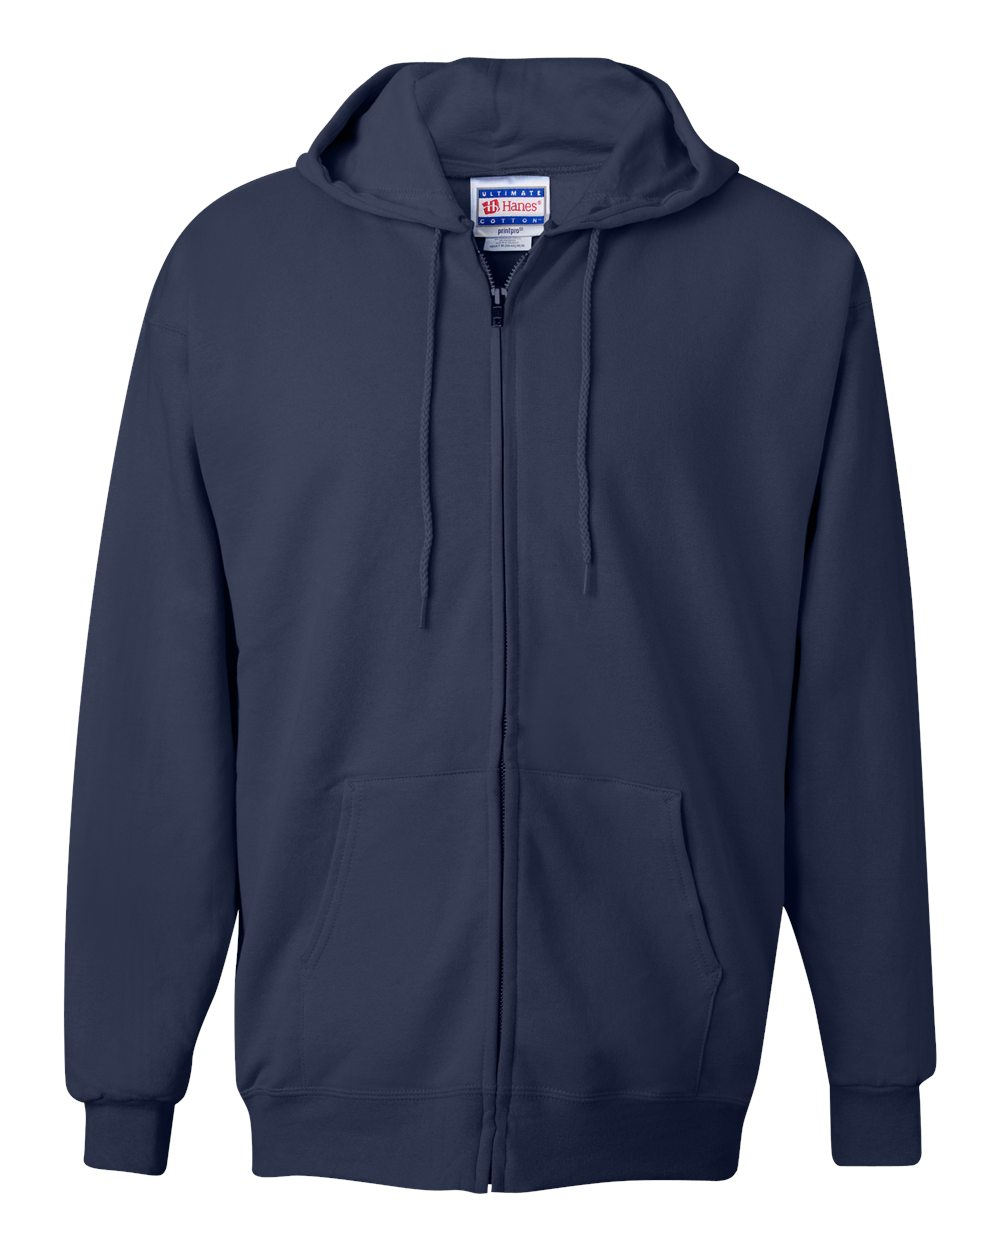 Hanes-Mens-Blank-Ultimate-Cotton-Full-Zip-Hooded-Sweatshirt-F280-up-to-3XL miniature 15